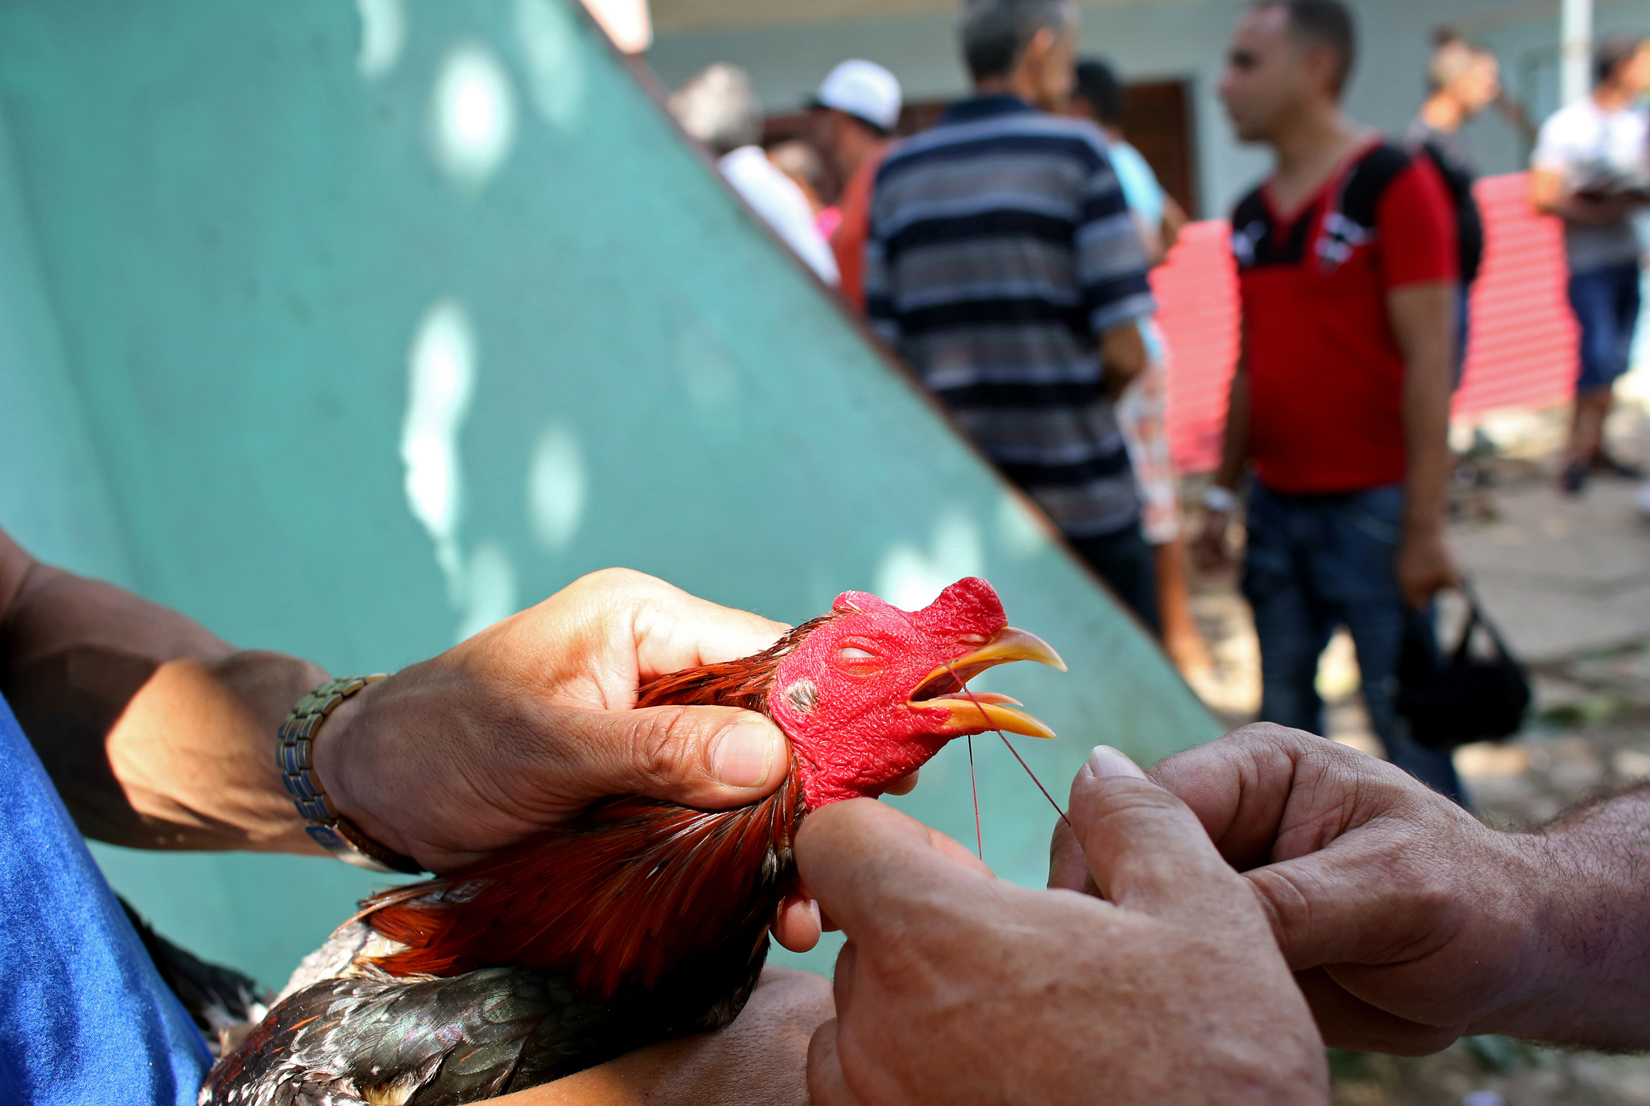 A chicken's beak is tied shut to prevent premature pecking before a cock-fighting event at a sports arena on April 18, 2015 in Managua, Cuba. Cock-fighting in Cuba is in the gray area of legal - state-run events such as this (non-private) functions are permitted, but not monetary betting. This is in part due to lingering bitterness over the control U.S. mafia used to exercise over casinos and prostitution in pre-revolutionary Cuba, the income from which allowed crime lords a certain level of interference in the country's political matters.